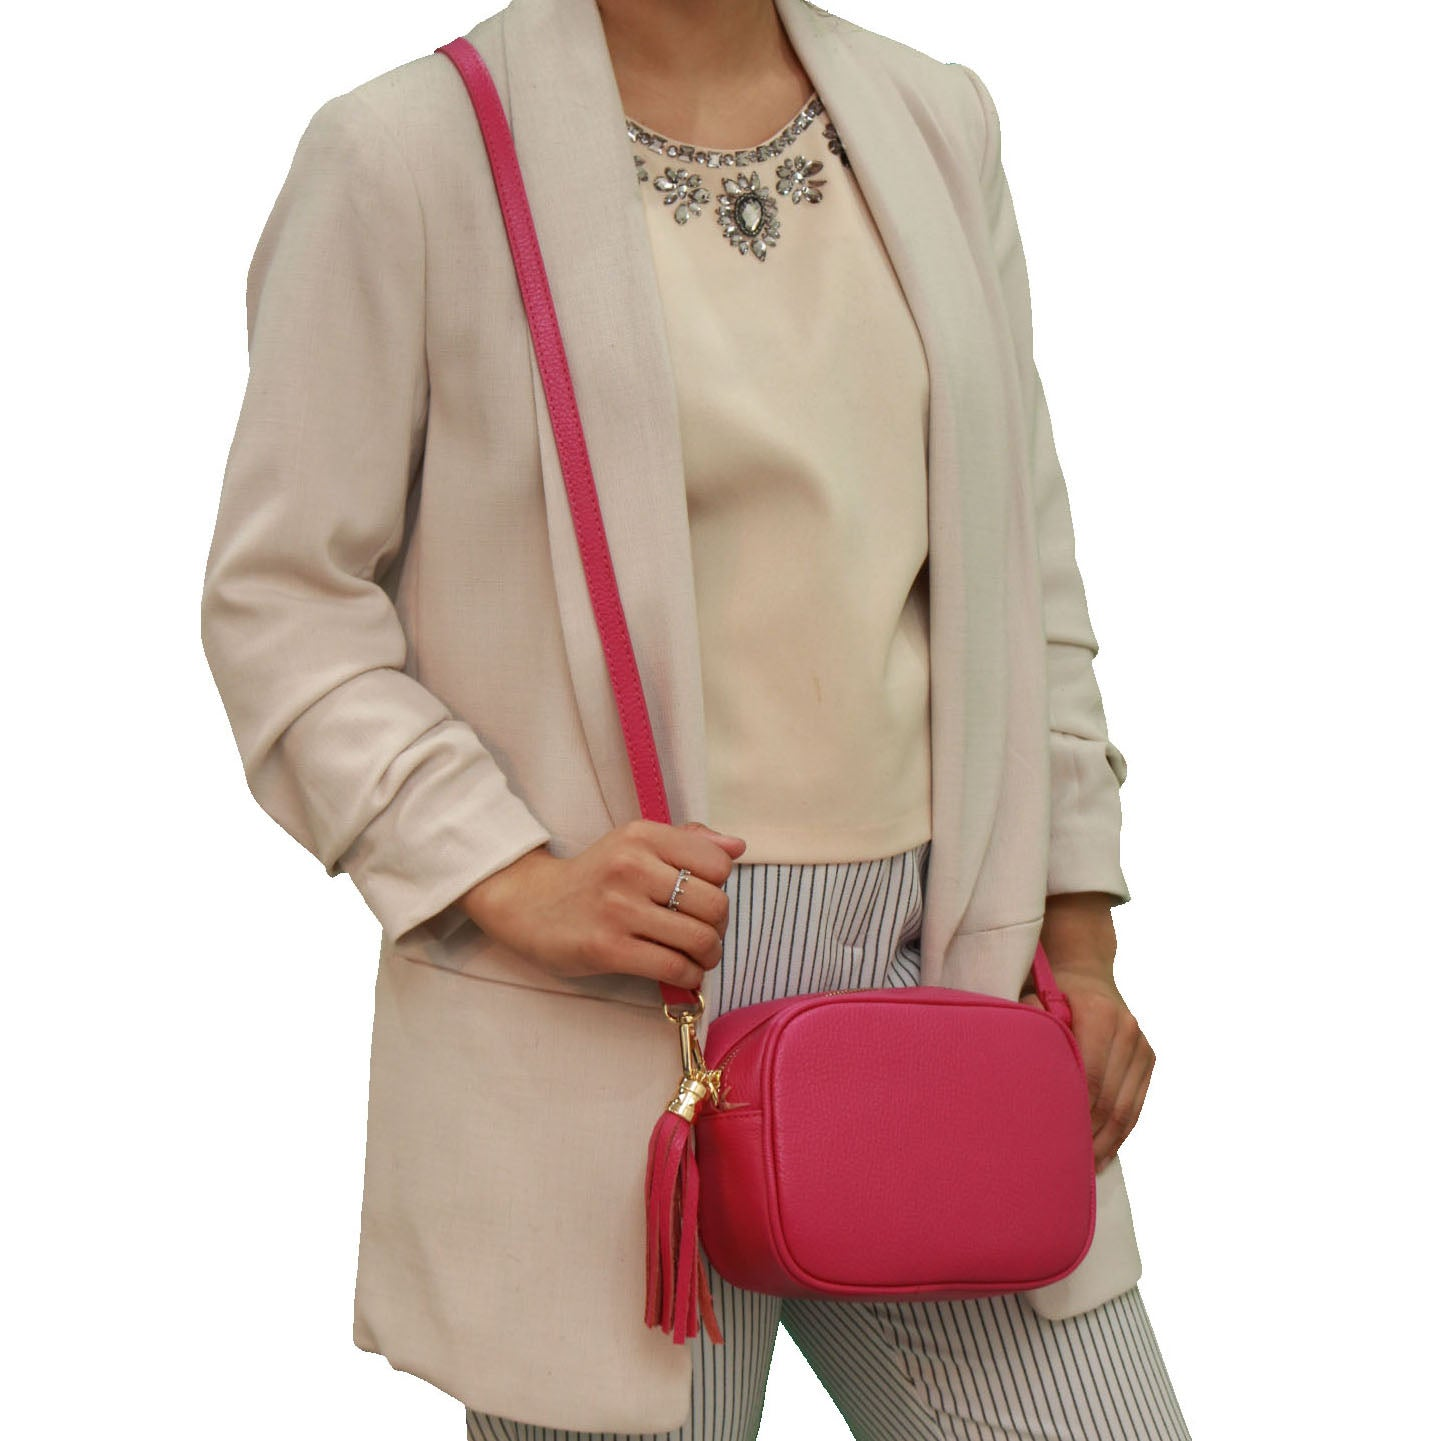 Fuchsia real soft leather compact cross body bag with leather tassel attached to zipper closure